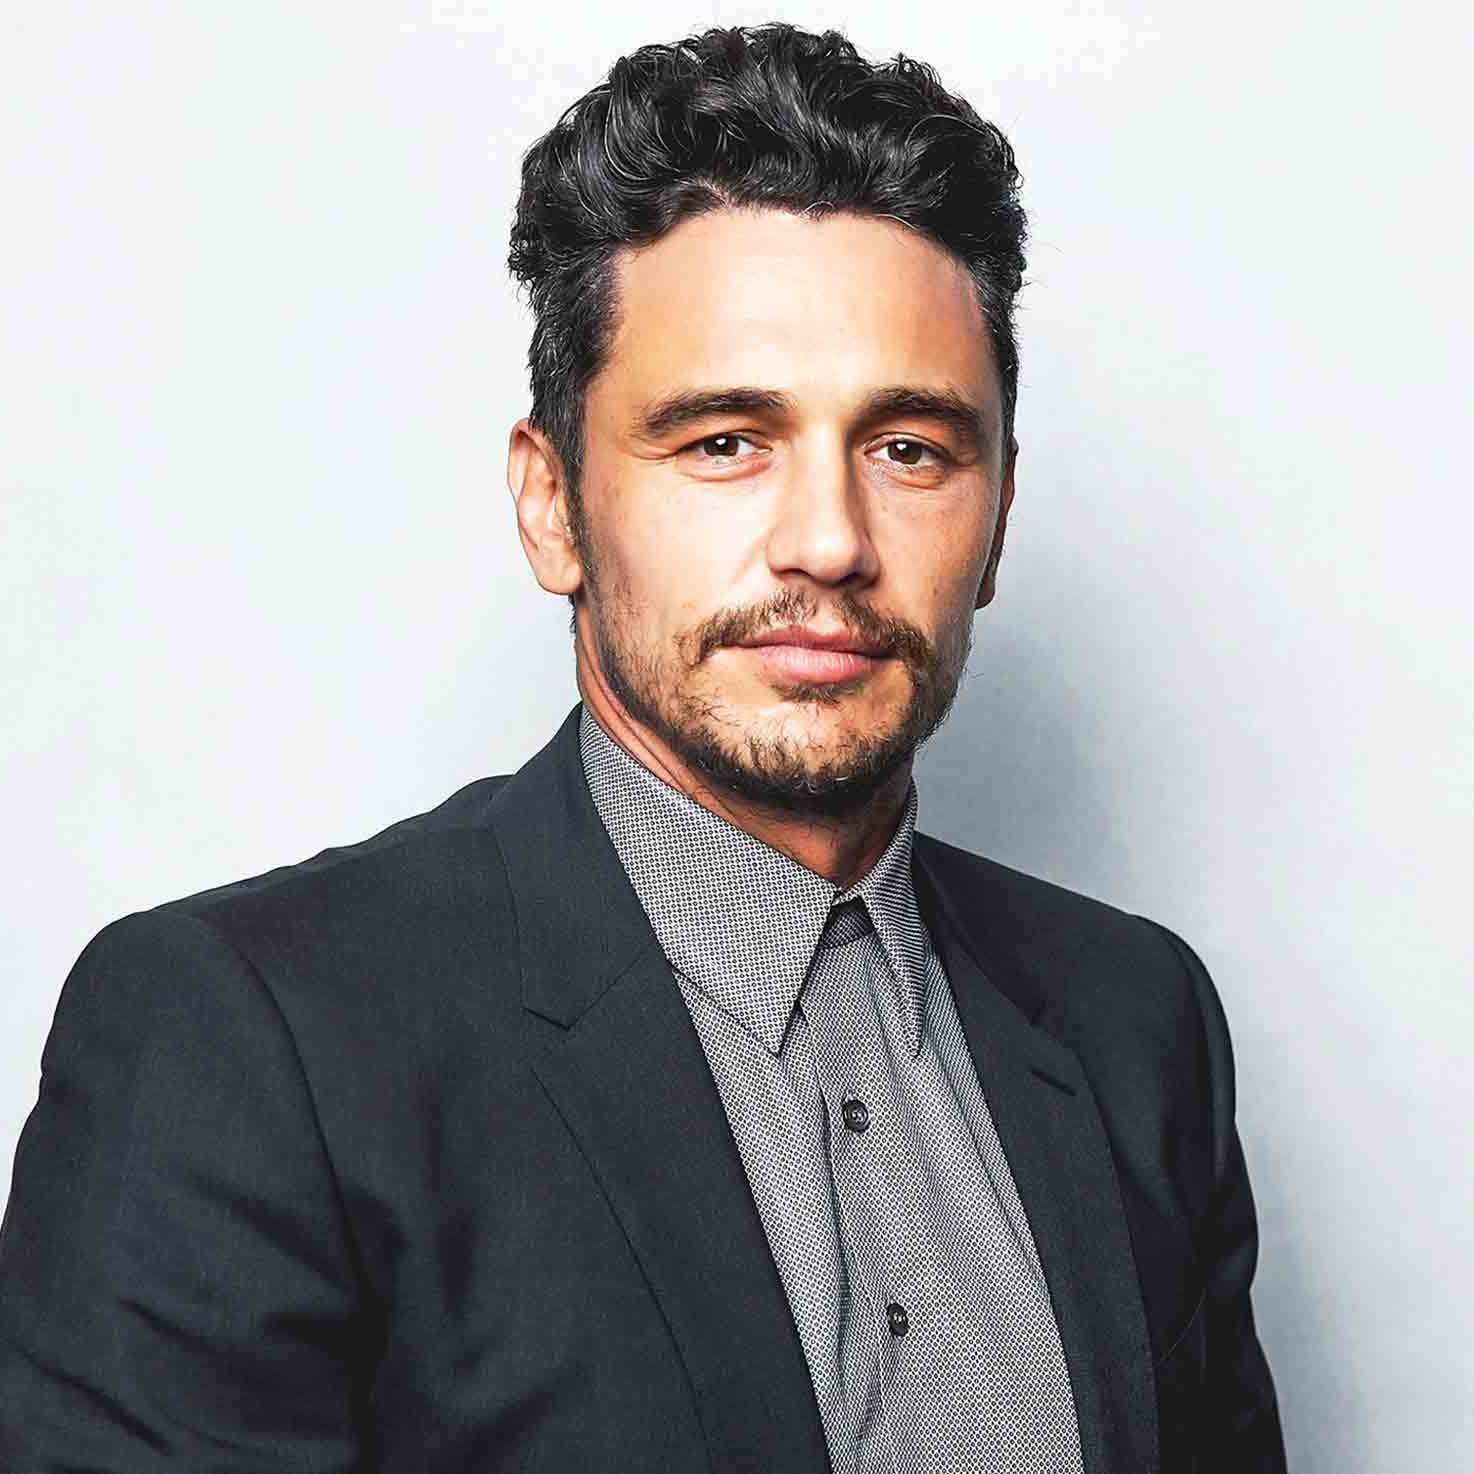 James Franco poses for a portrait at the 2018 BAFTA Los Angeles Tea Party in Beverly Hills, California.